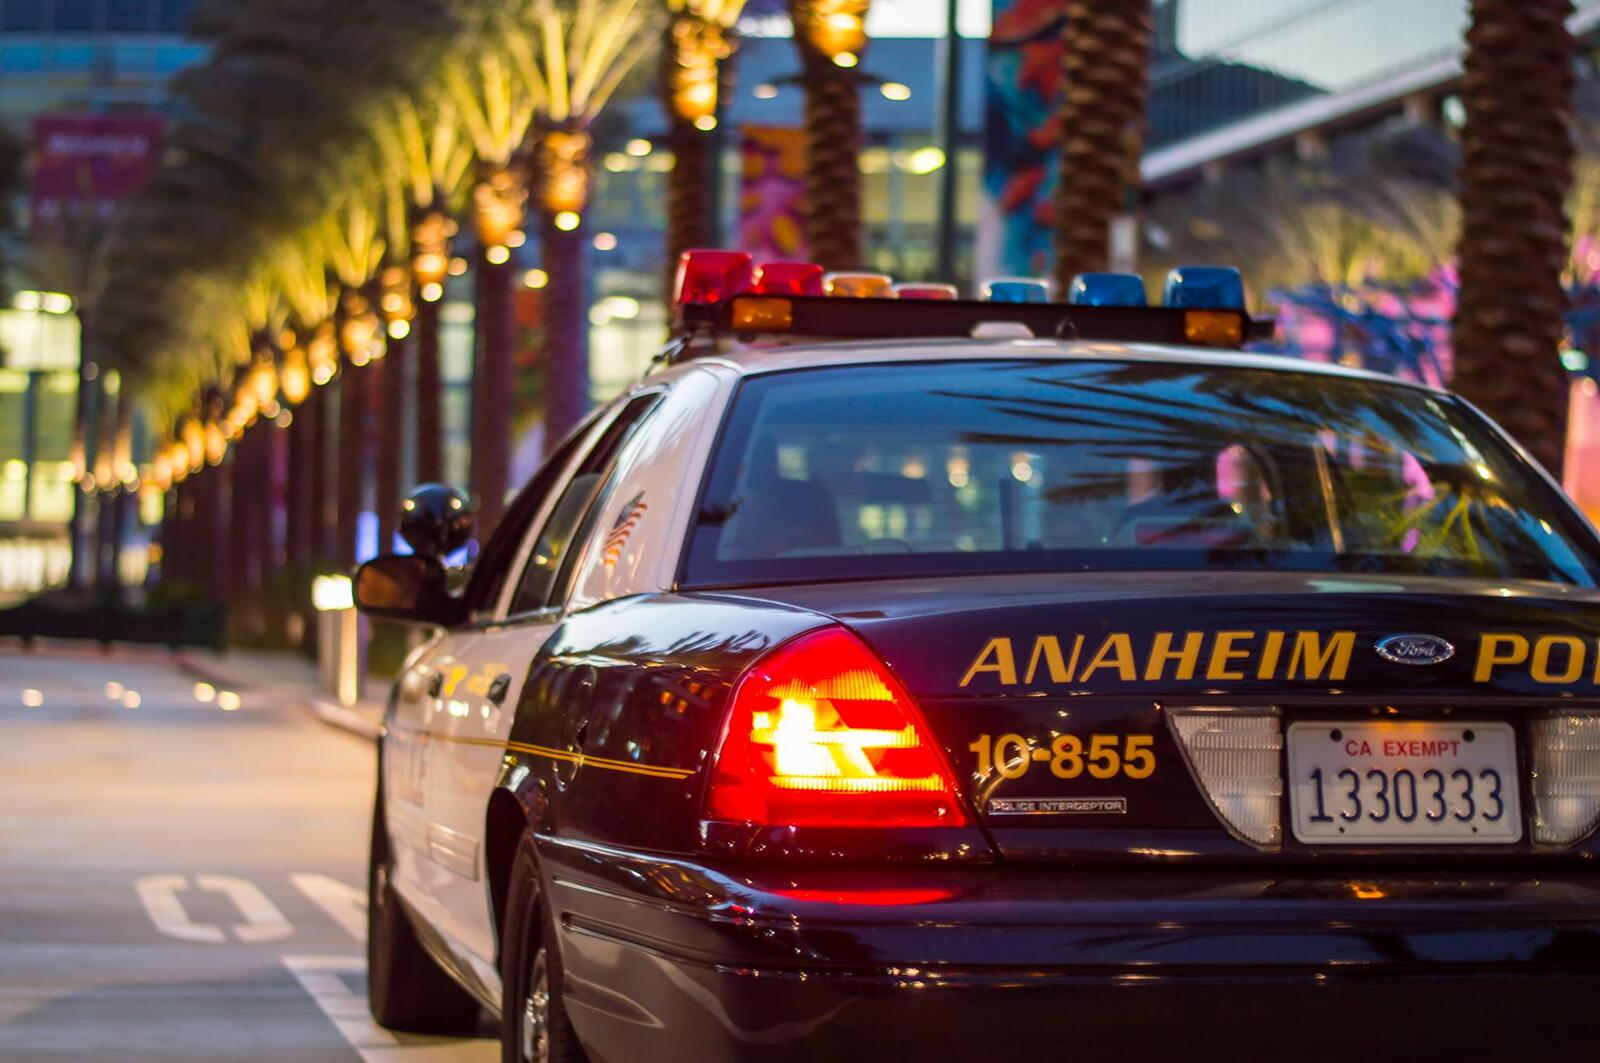 Anaheim Police Department - 94 Crime and Safety updates